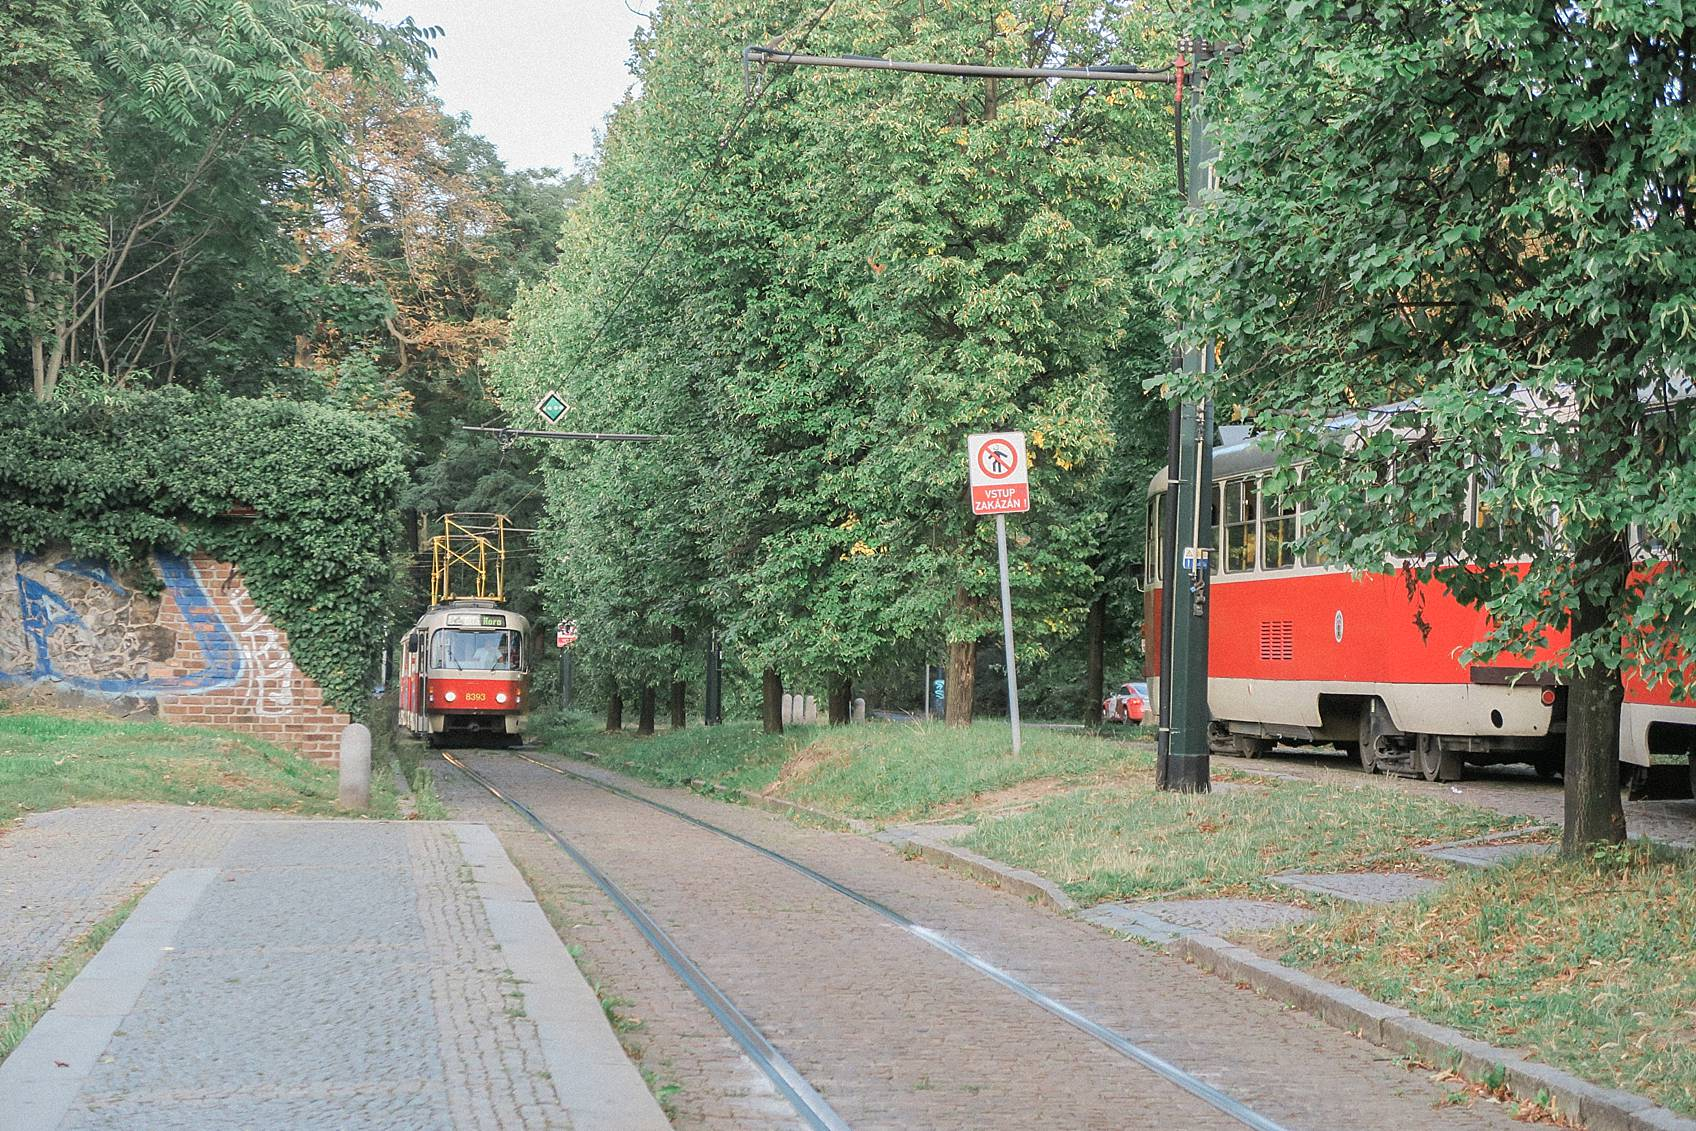 Photo guide to Prague: taking the bus